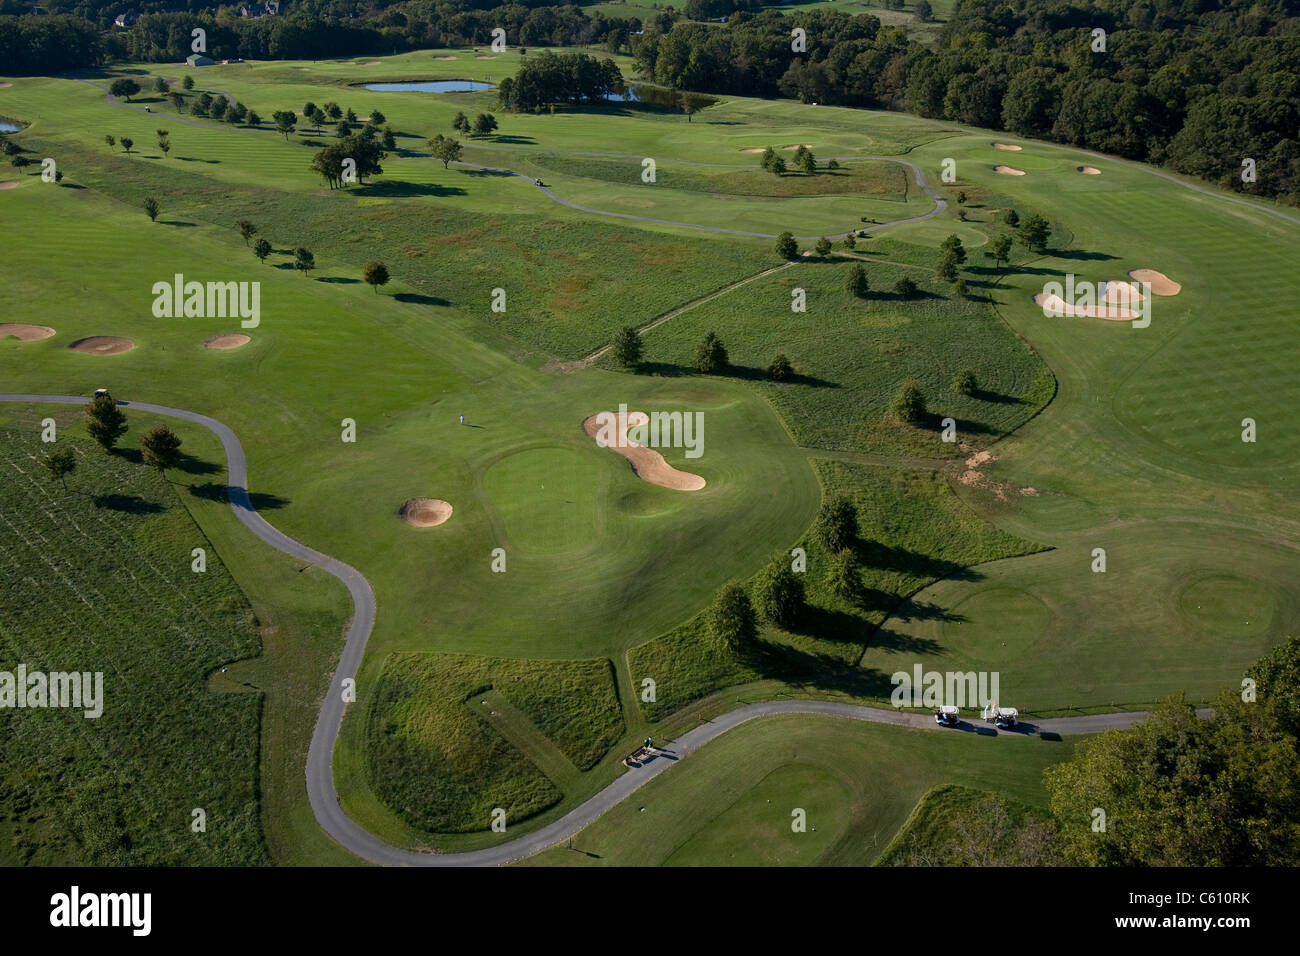 Aerial photo of Dogwood Hills Golf Course in Bella Vista, Ark. - Stock Image